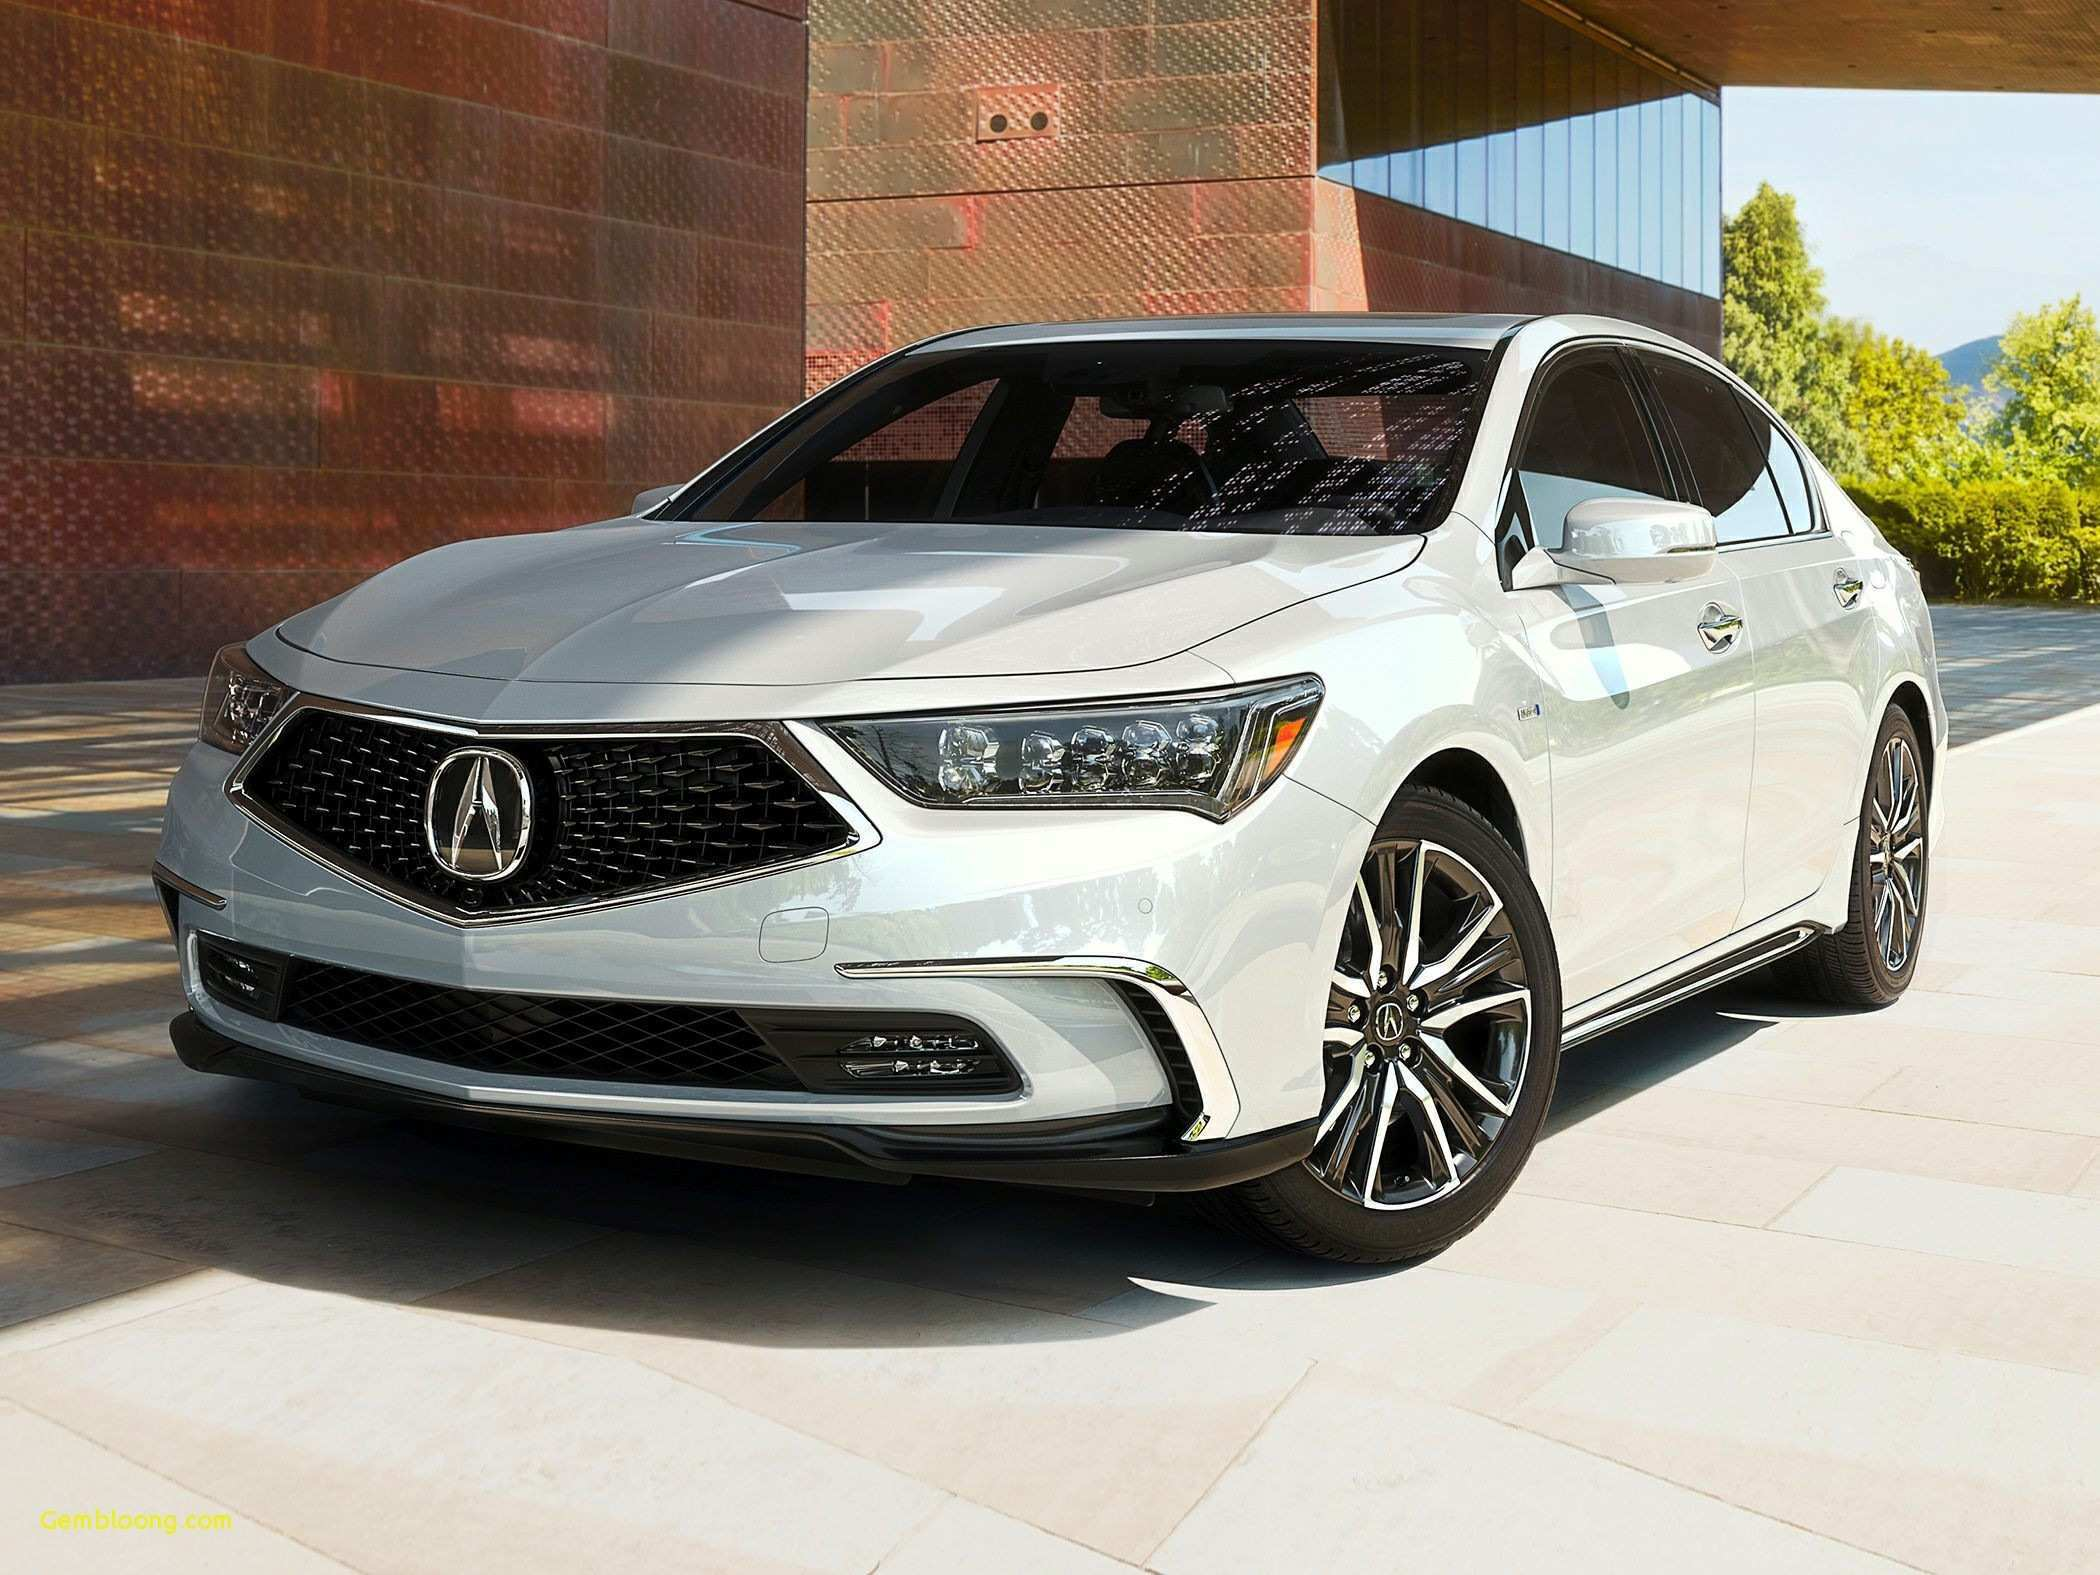 61 All New 2020 Buick Lesabre Picture